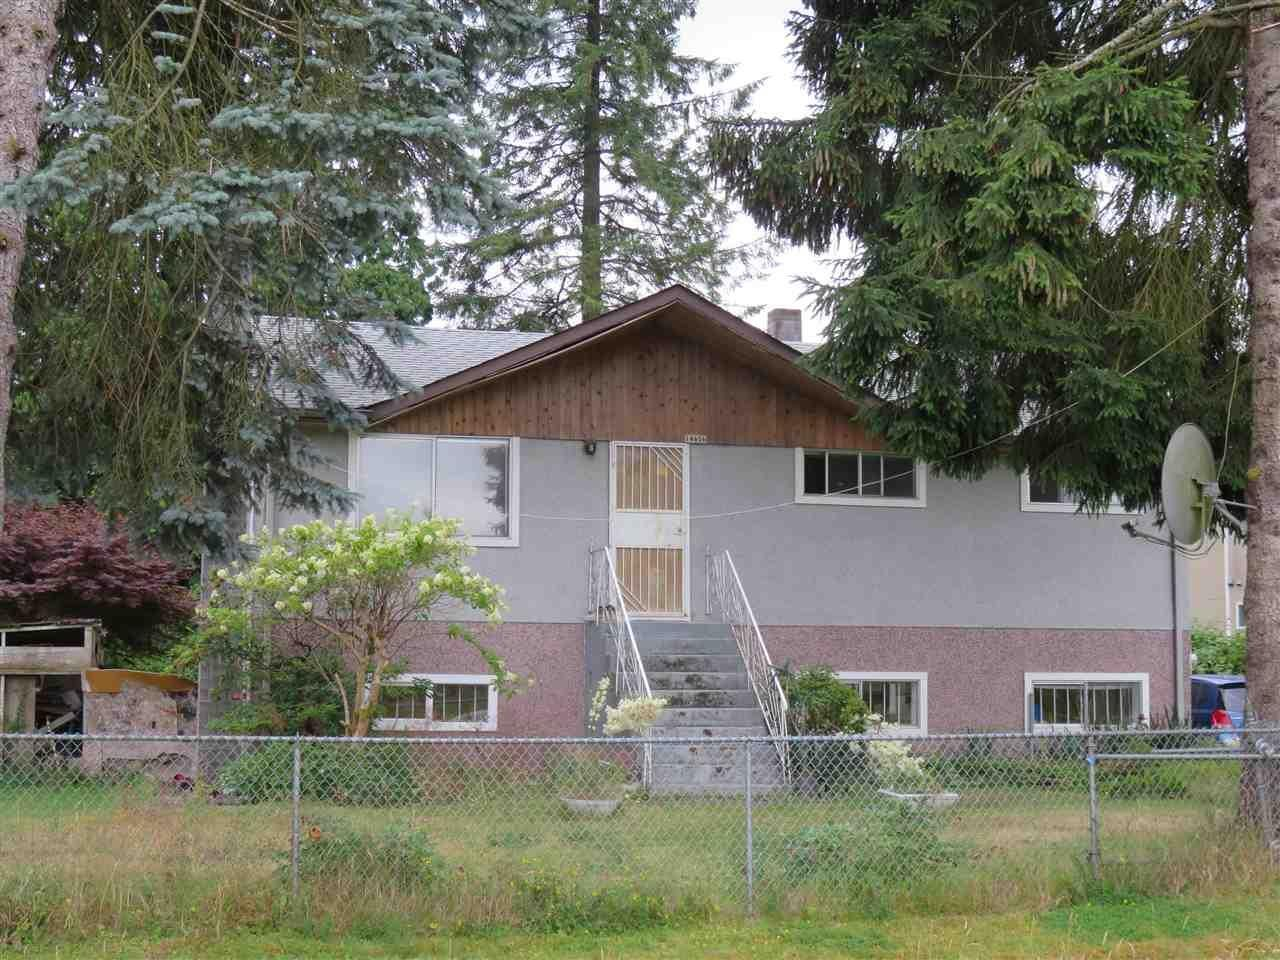 R2089337 - 14656 102A AVENUE, Guildford, Surrey, BC - House/Single Family